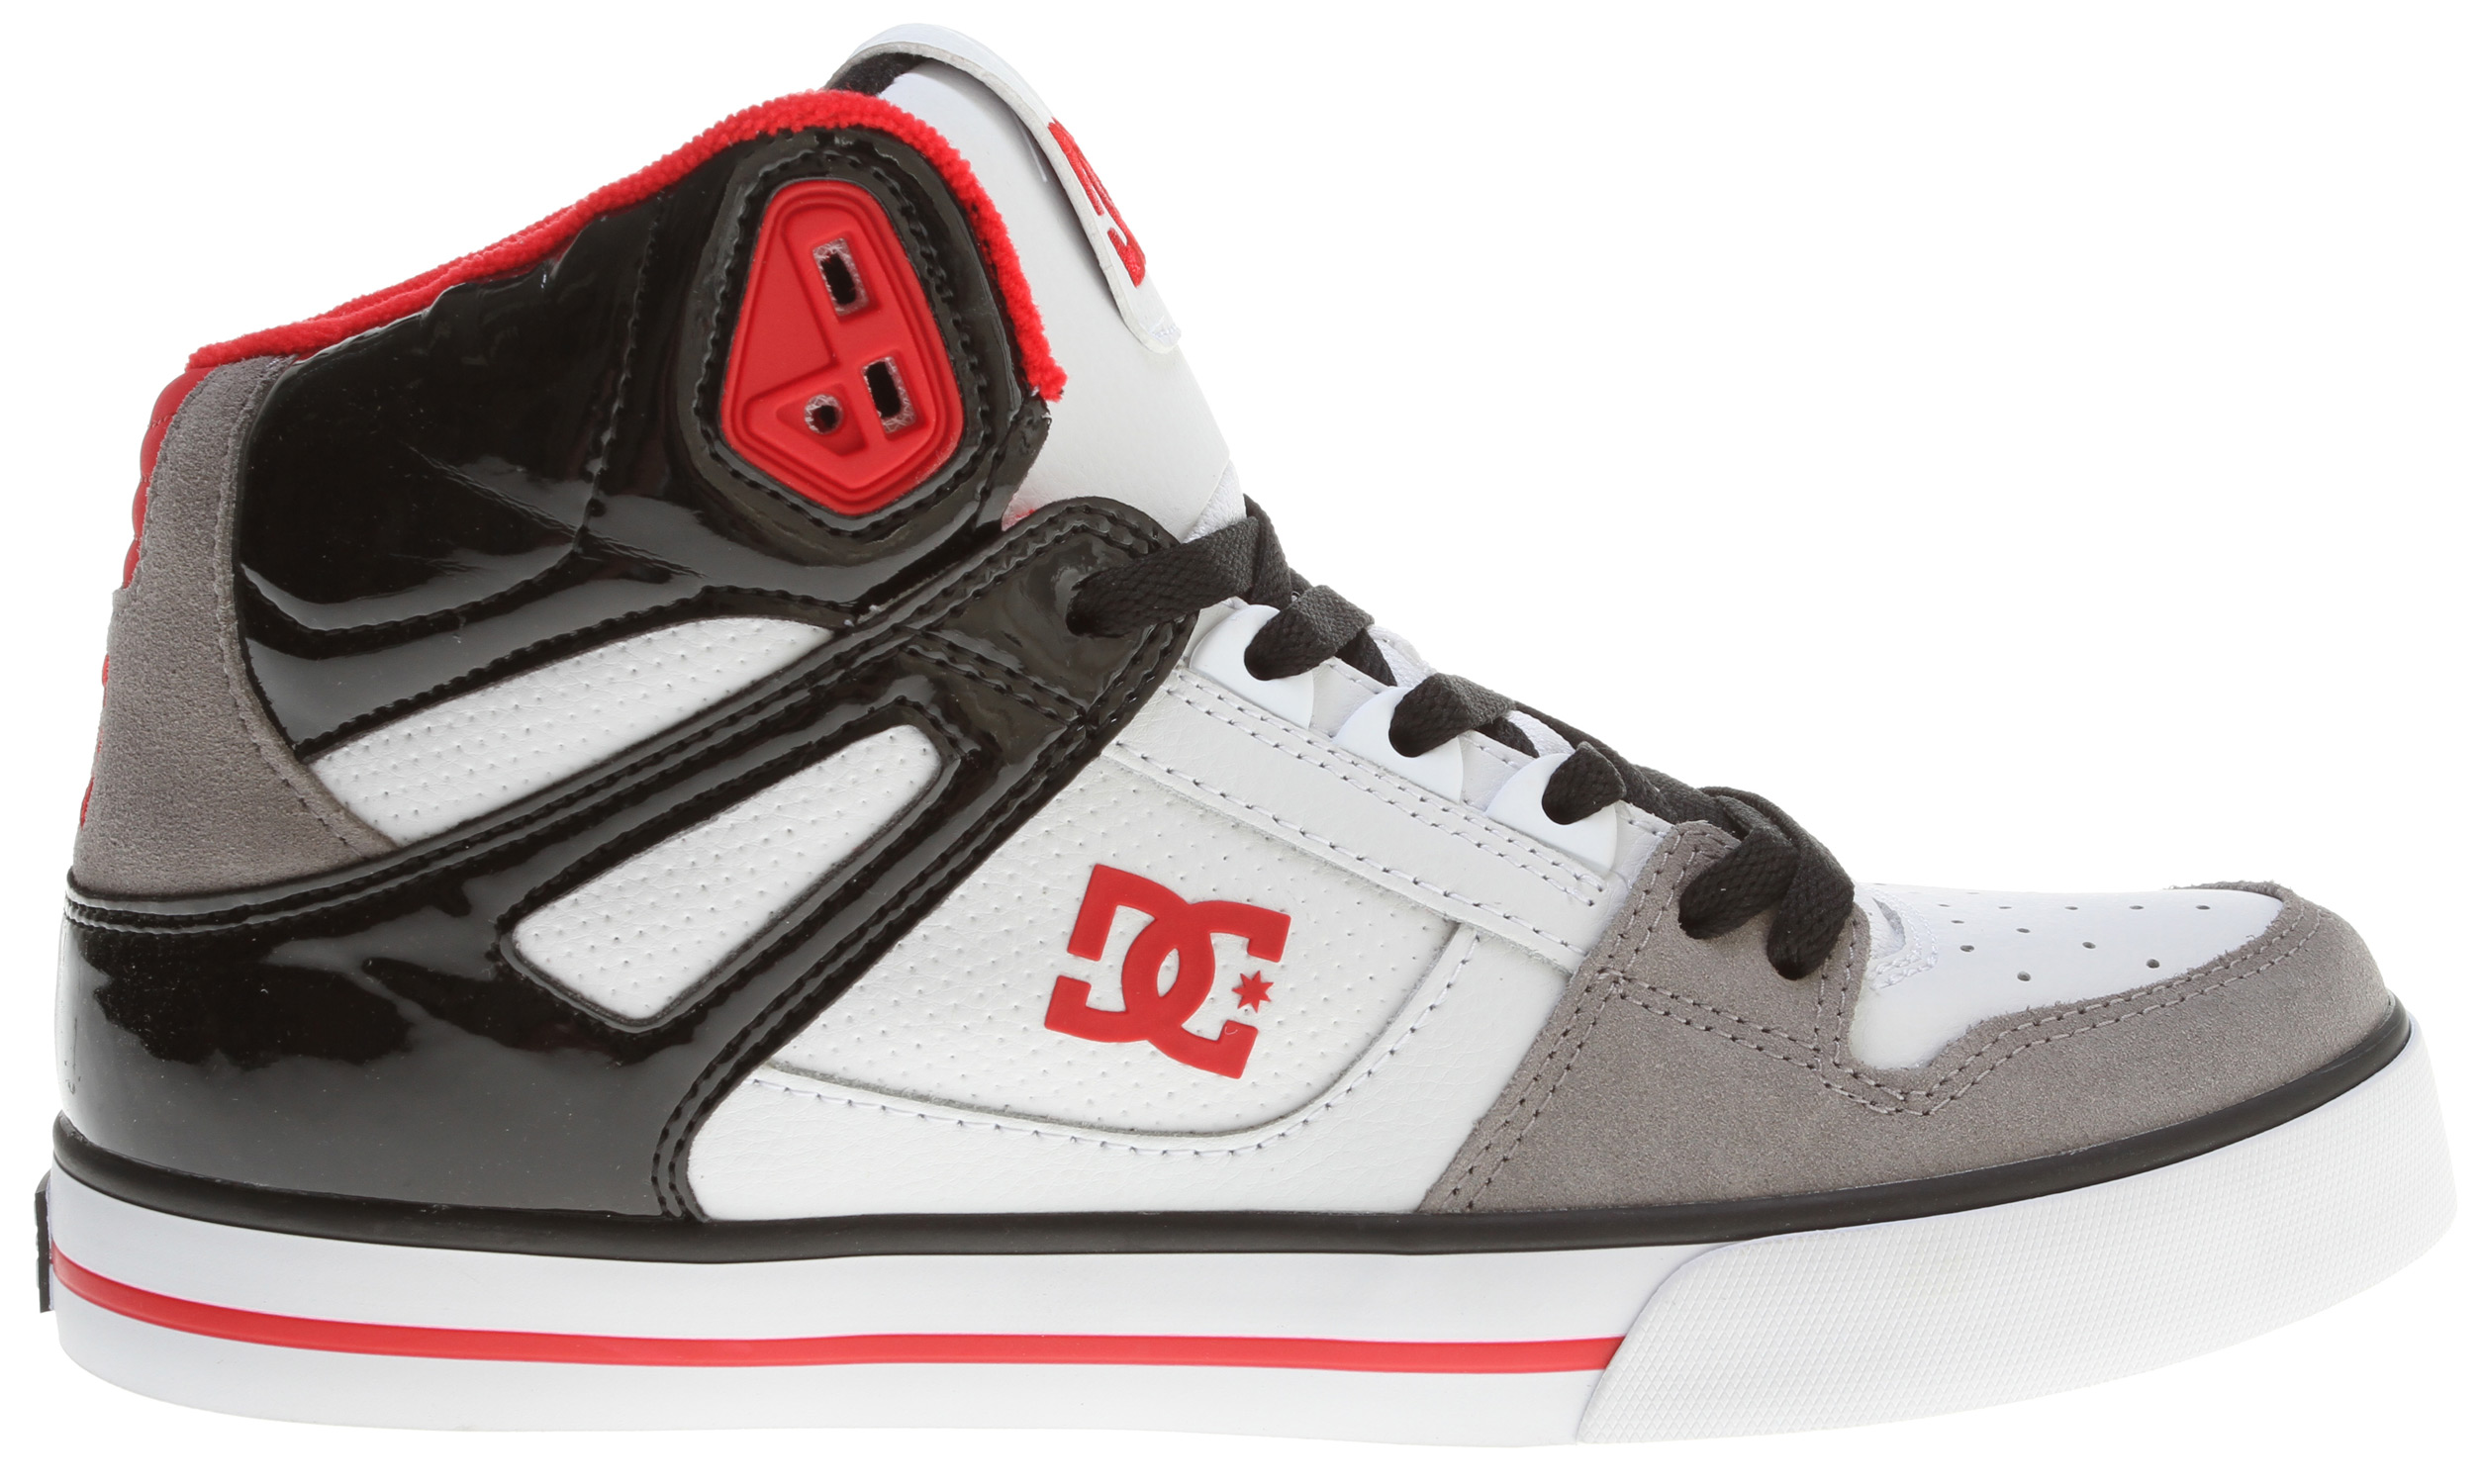 "Skateboard Hi tops aren't for everyone, it either makes your day or gets in your way. But consider a lightweight shoe, foam padded tongue and collar for comfort, and a wrap cup sole for extra protection. Throw in a sweet style and high tops might just be the way. Follow the Spartan rabbit.Key Features of the DC Spartan HI WC Skate Shoes: Foam Padded Tongue And Collar For Added Comfort And Support Vent Holes In Upper For Breathability TPU Eyelets Performance Rubber Wrap Cup Sole, Our Exclusive Construction Technique Abrasion-Resistant Sticky Rubber Outsole With DC's Trademarked ""Pill Pattern"" Bottom. - $44.76"